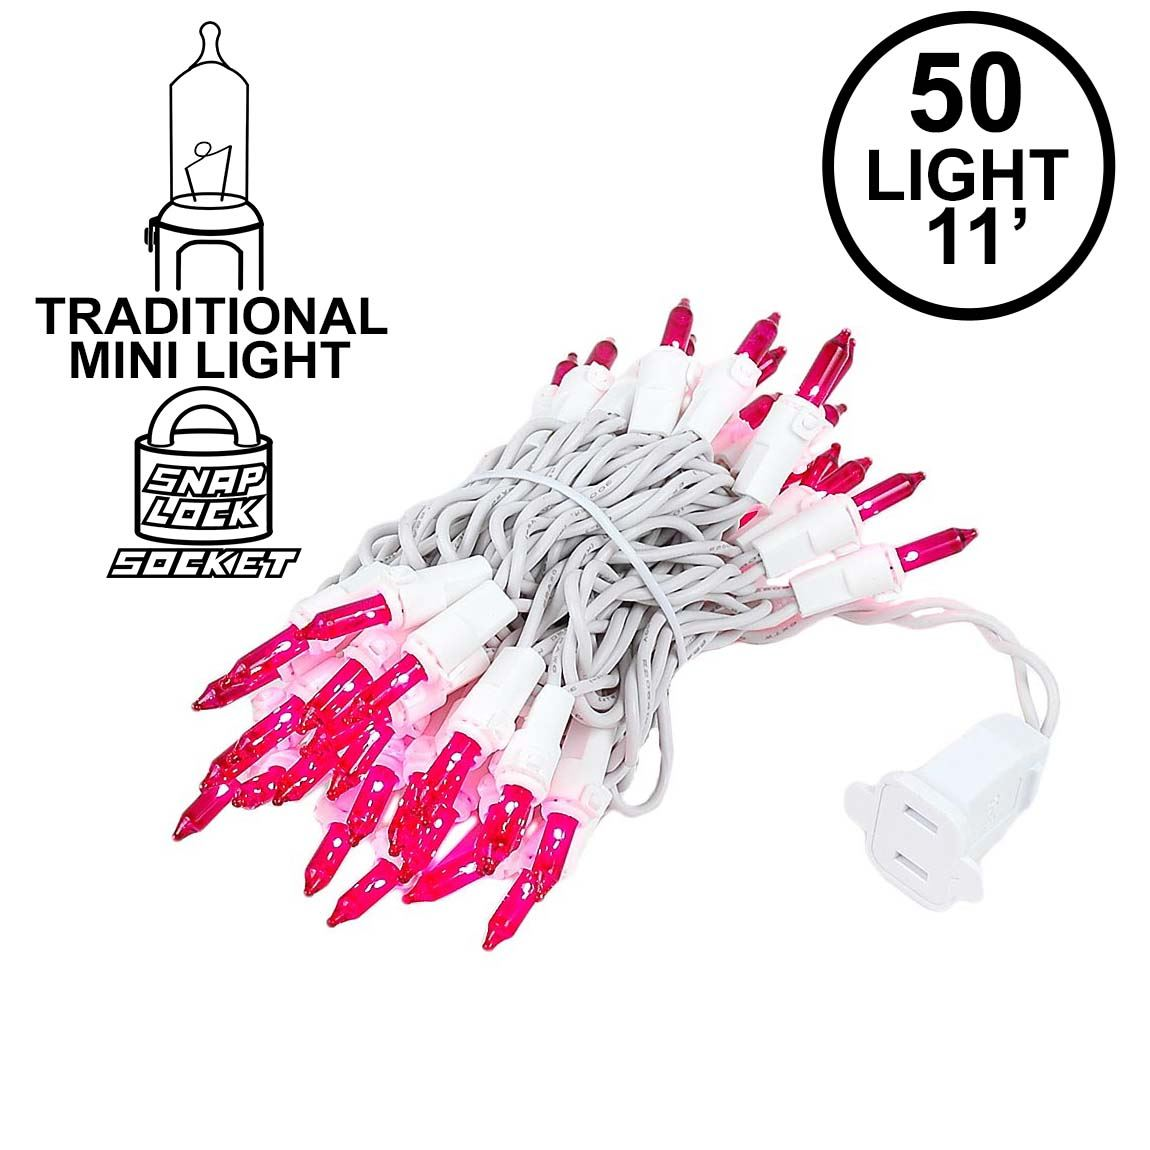 Picture of Pink 50 Light 11' Long White Wire Christmas Mini Lights